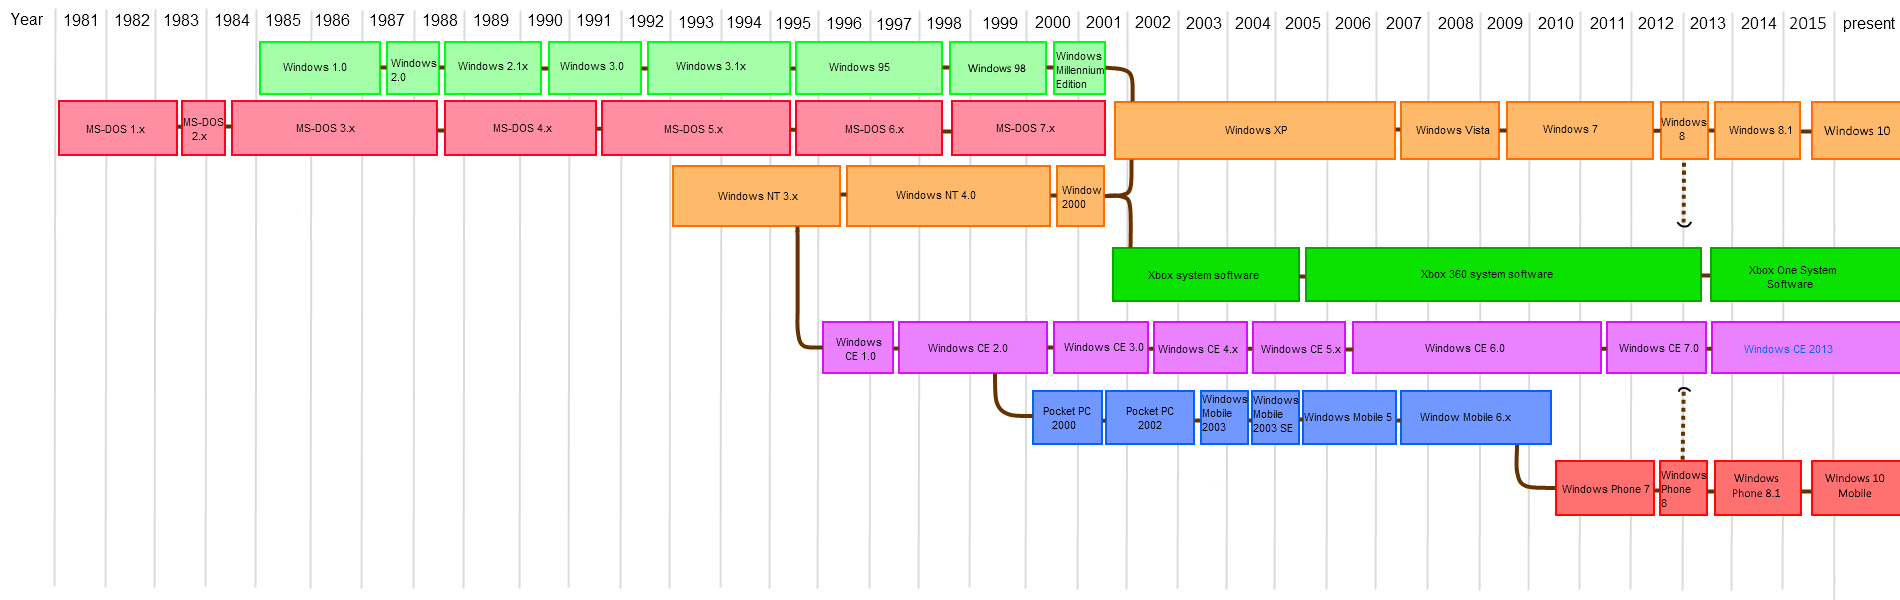 File:Microsoft timeline of operating systems 2.png.